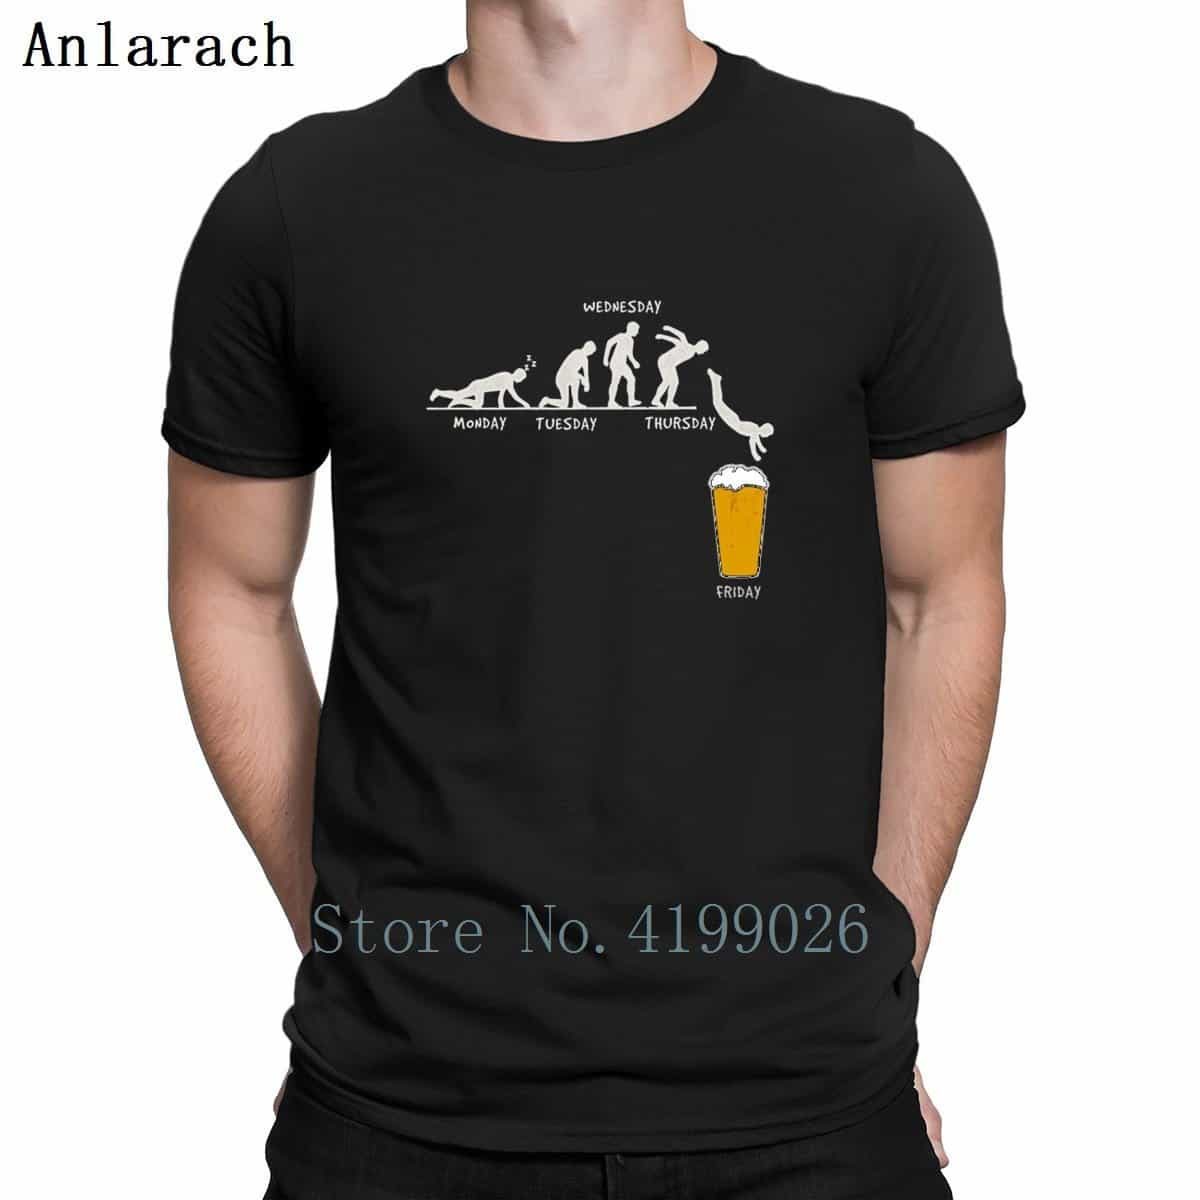 Craft Beer Design Funny T-Shirt, [variant_title], [option1], [option2], [option3] - anythinganyware